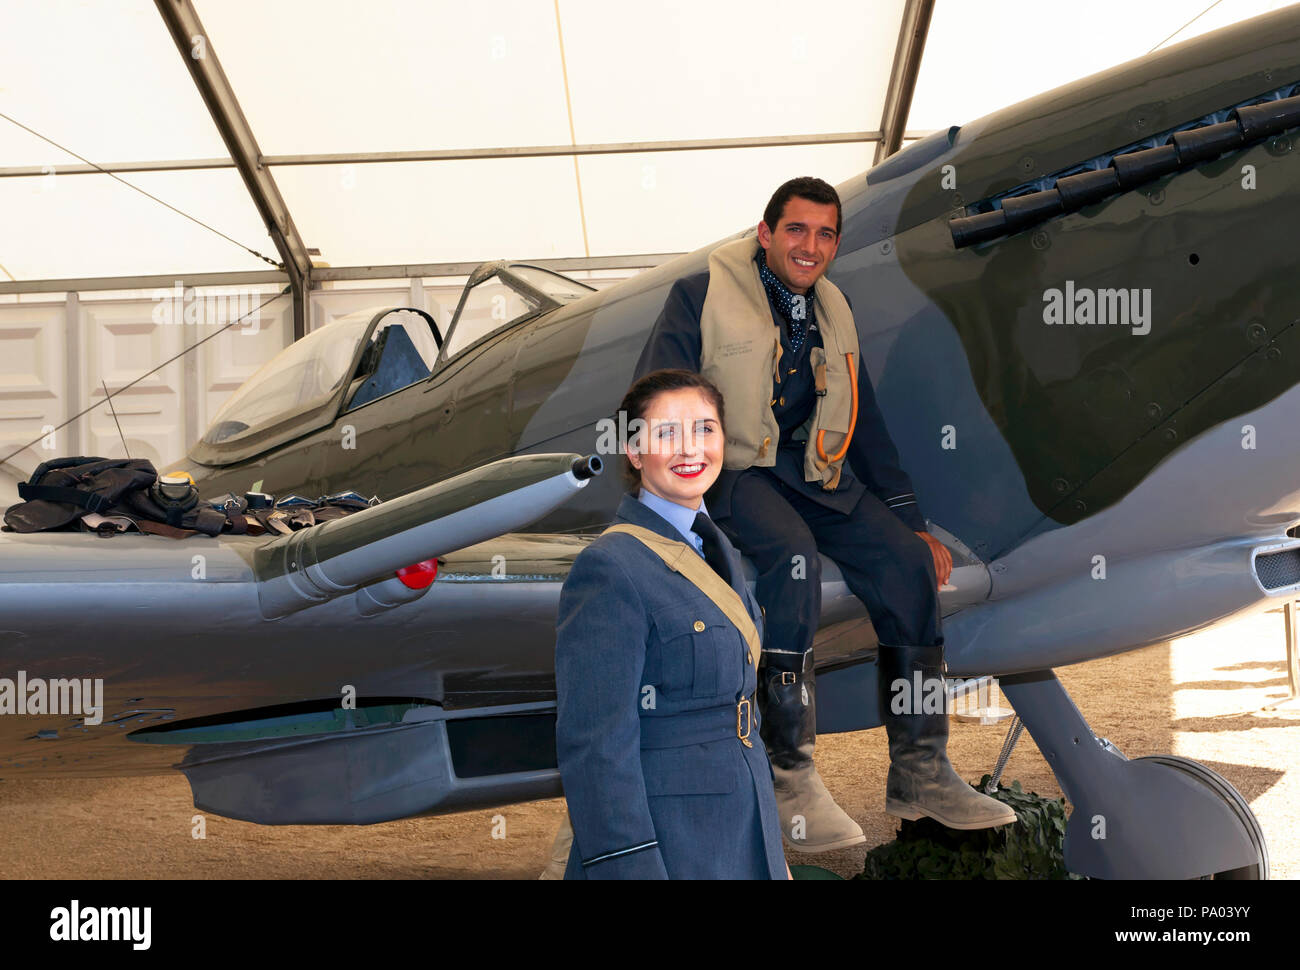 Man and Woman in period uniform, pose  by a  Supermarine Spitfire Mk XVI, part of the RAF Centennial Celebrations at  Horse Guards  Parade, London. - Stock Image